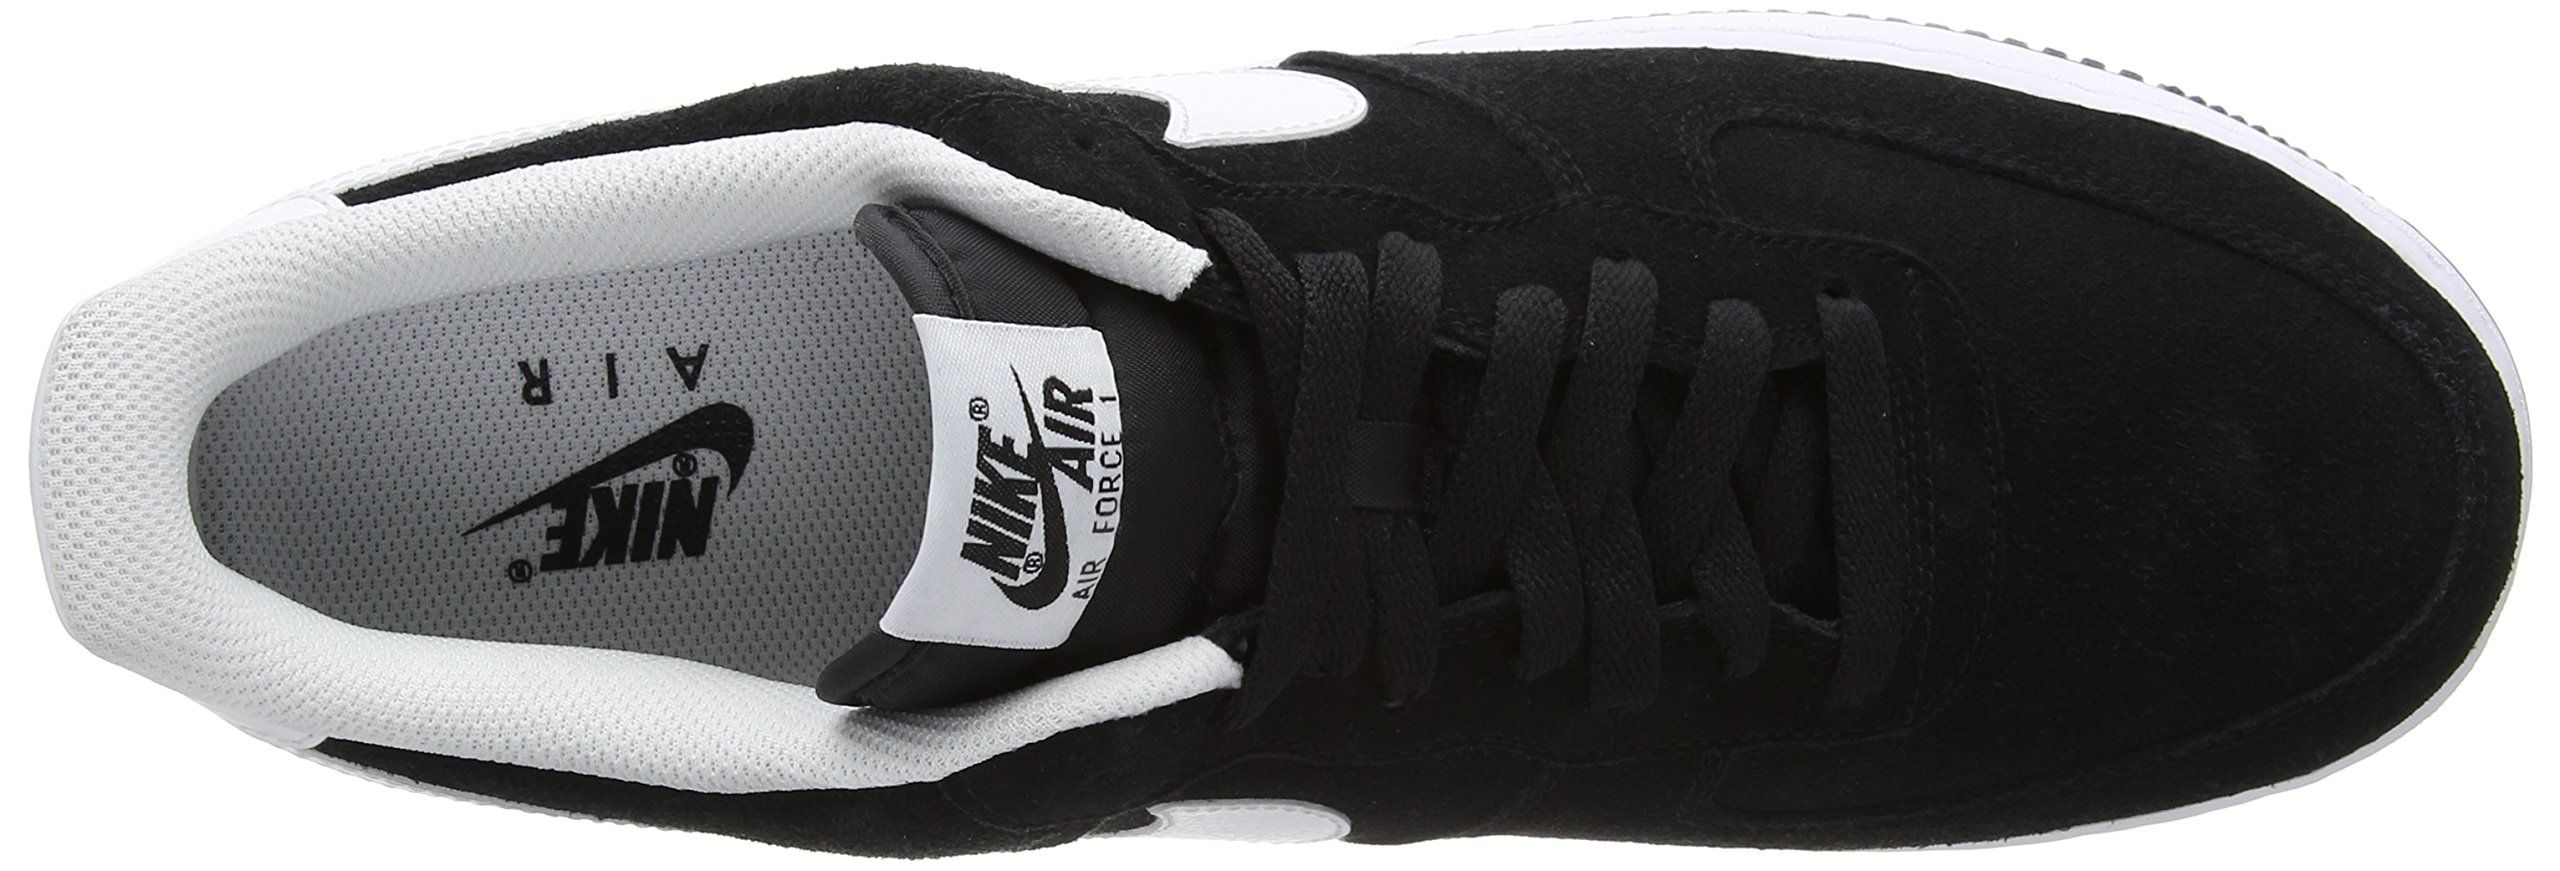 1ef5c69d331c1 NIKE Mens Air Force 1 Low 07 Basketball Shoes Black/White 315122068 ...